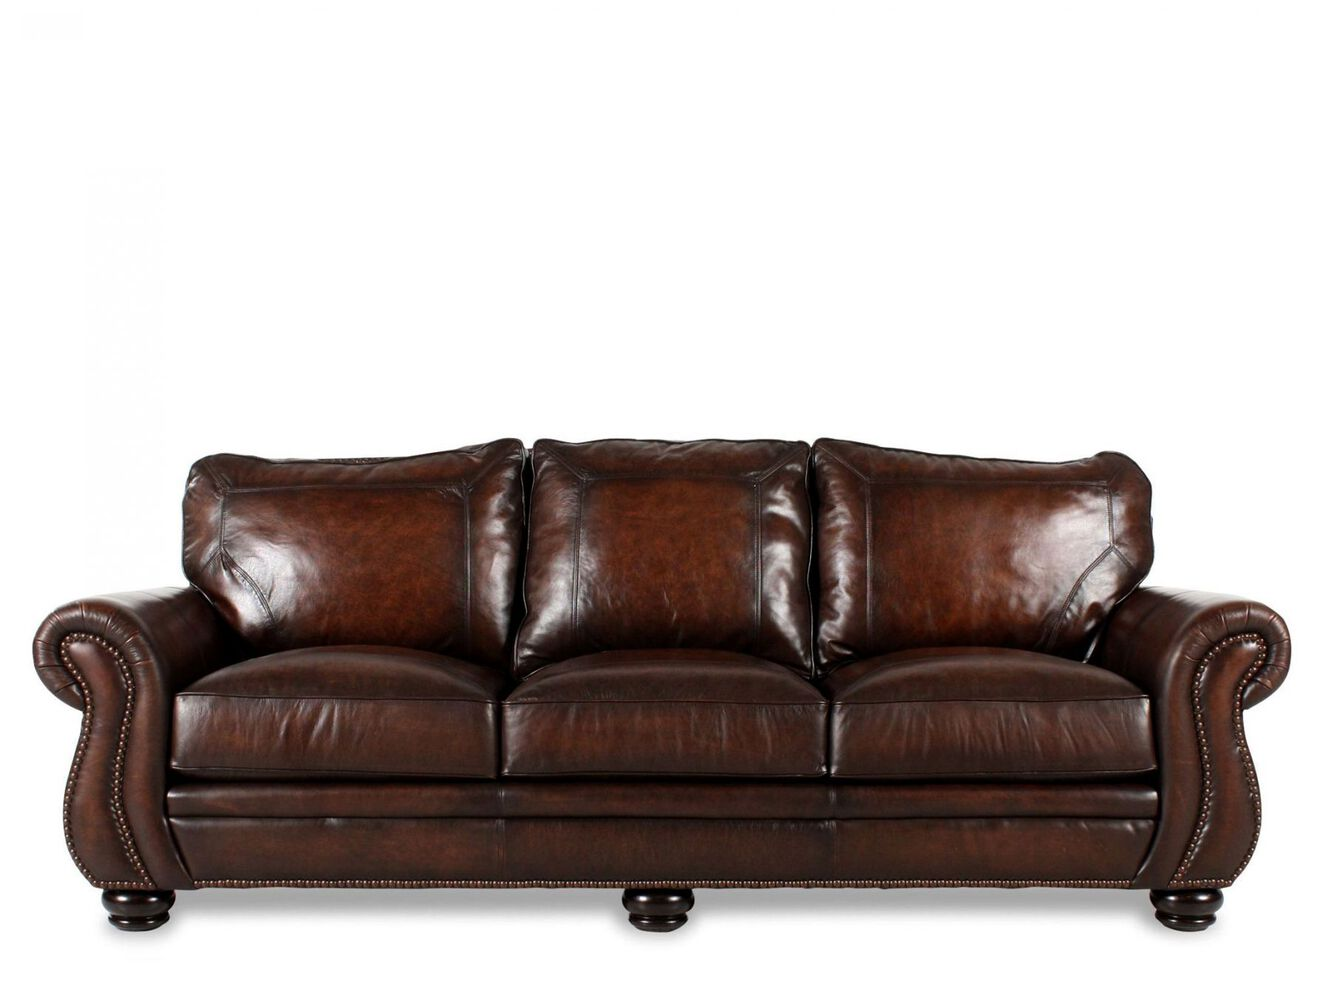 Bernhardt leather sofa mathis brothers for Furniture leather sofa